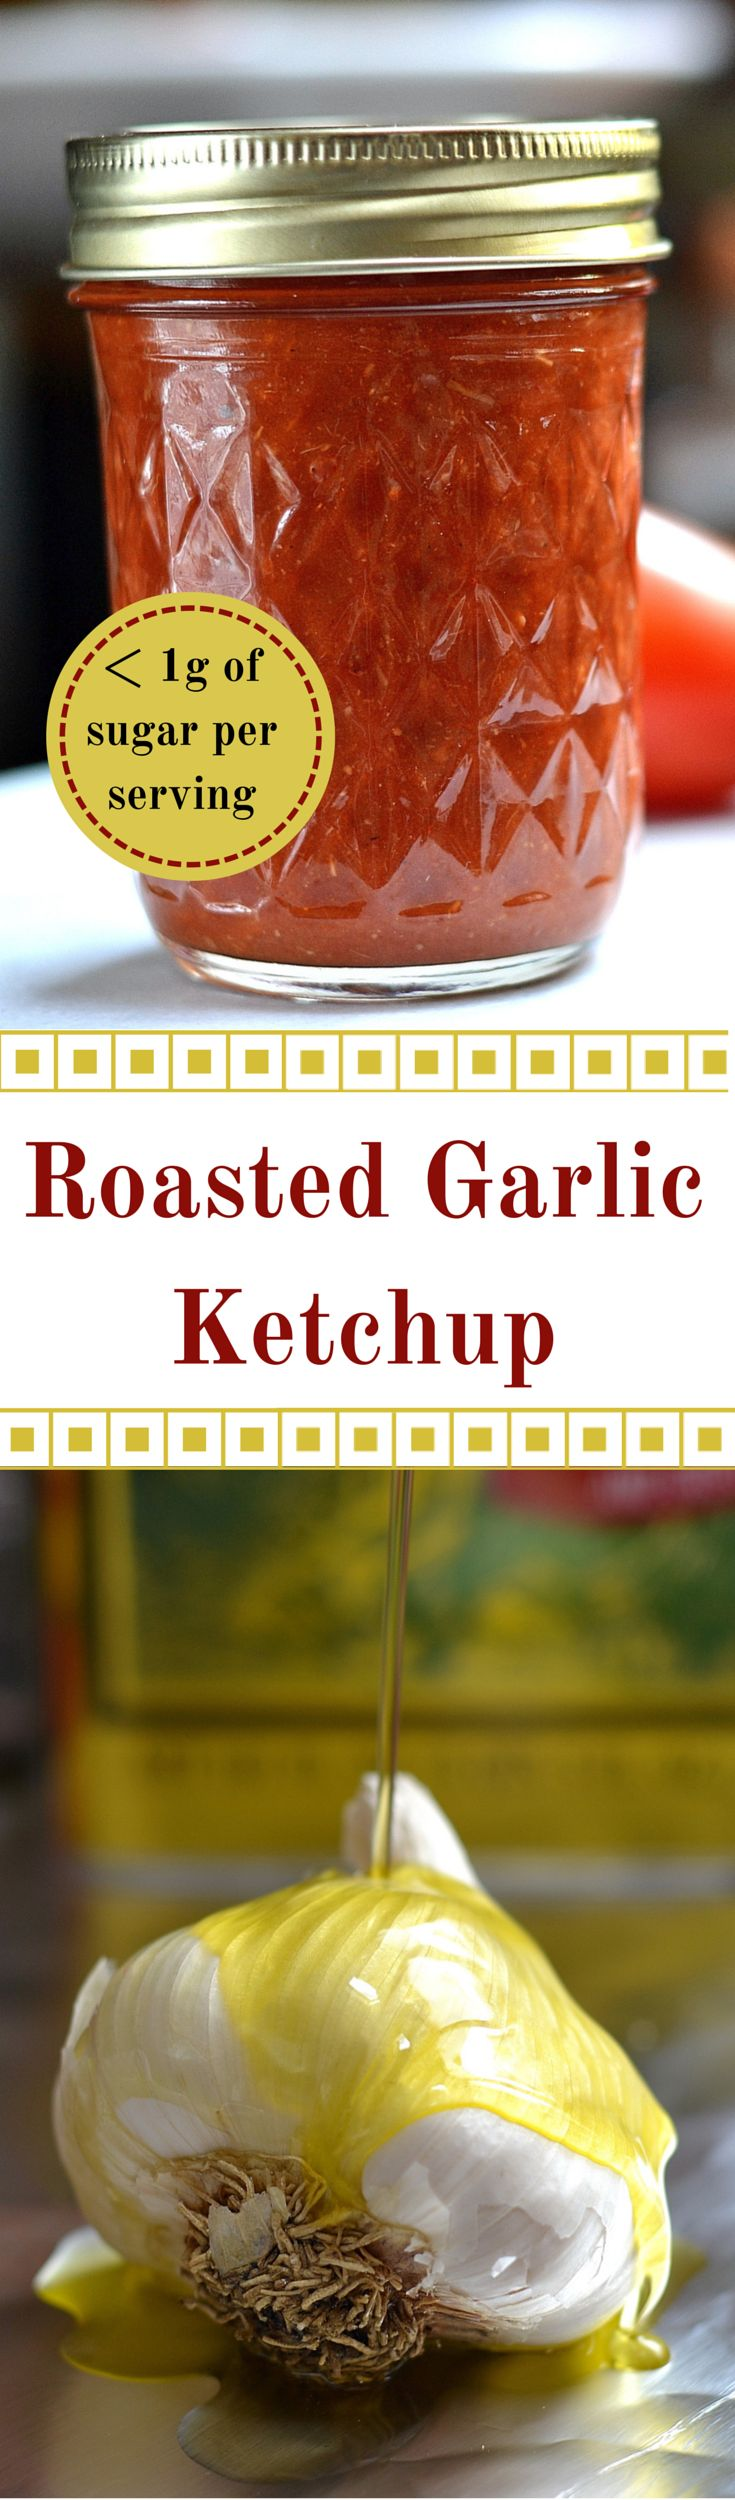 Tired of mass produced ketchup with high fructose corn syrup?  Try making this healthier Roasted Garlic Ketchup.  Less than 1g of sugar per serving vs. 4g of sugar in most store bought ketchup.  Much lower in sodium too.